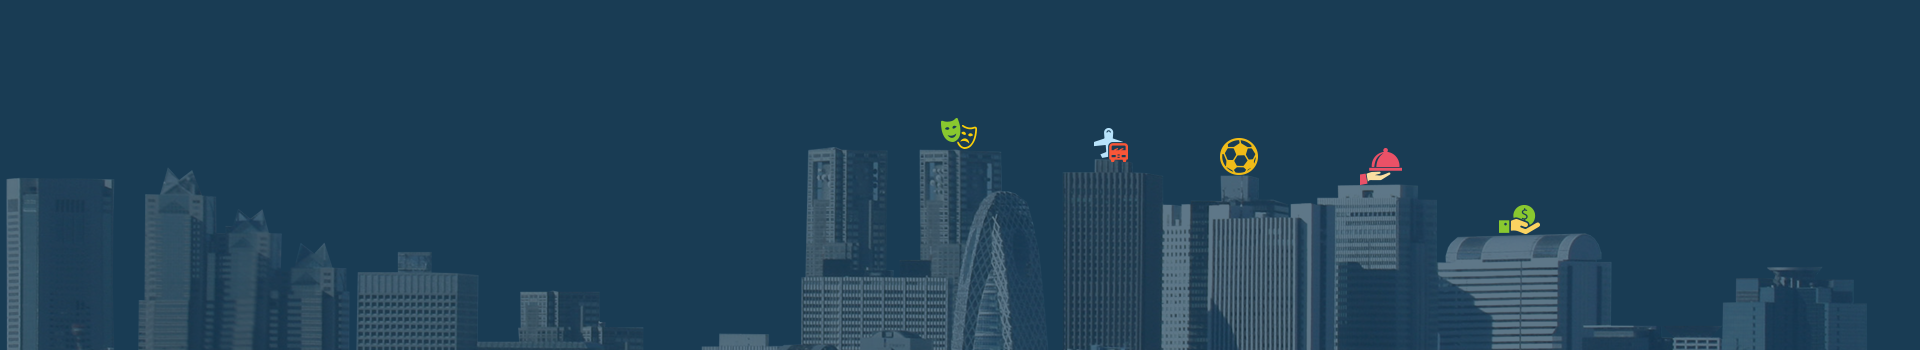 industries-banner